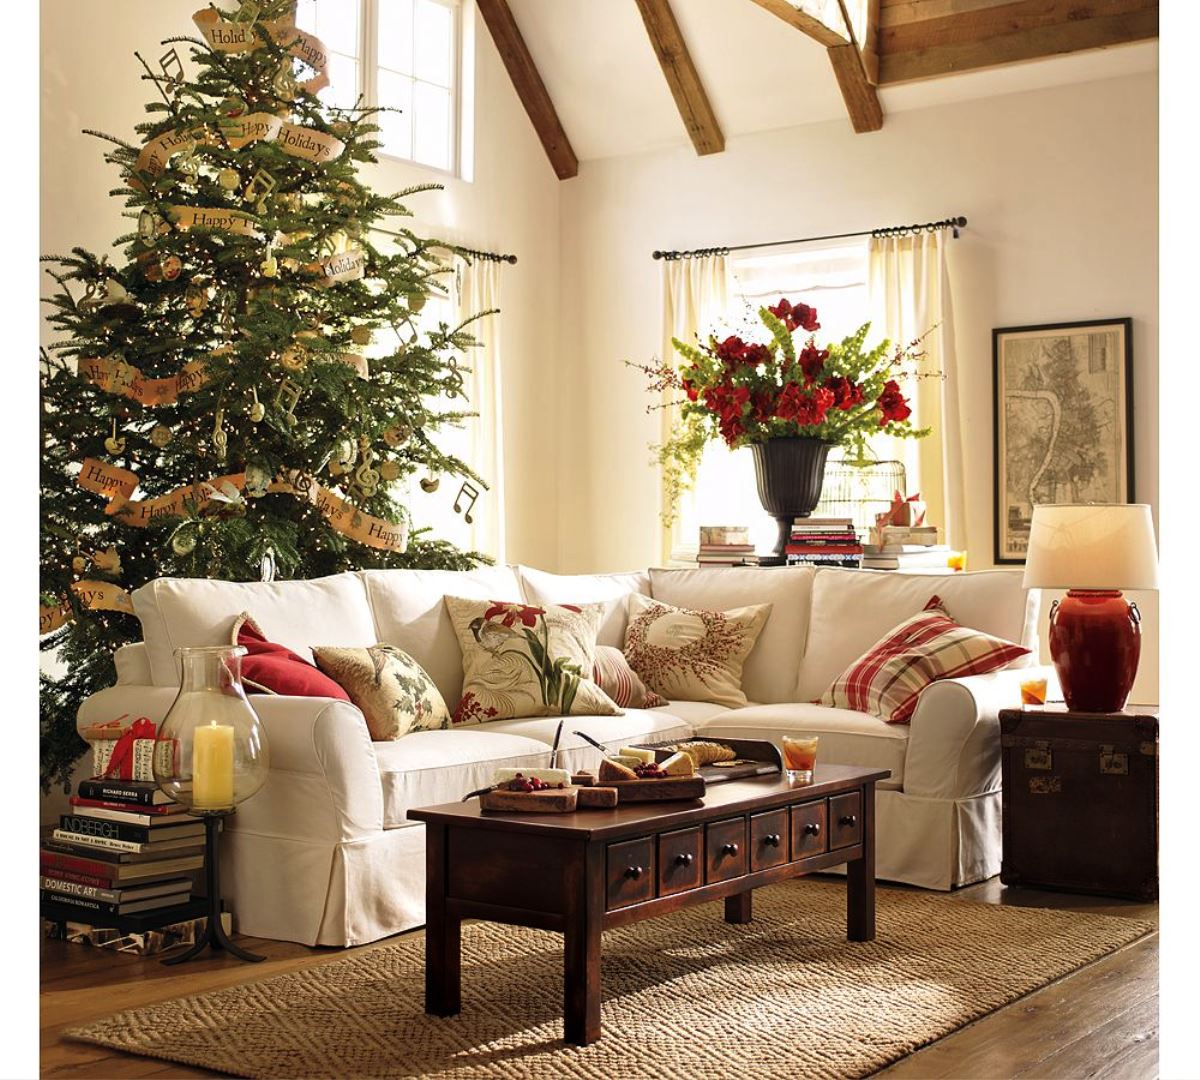 50 stunning christmas decorations for your living room - How to decorate living room for christmas ...